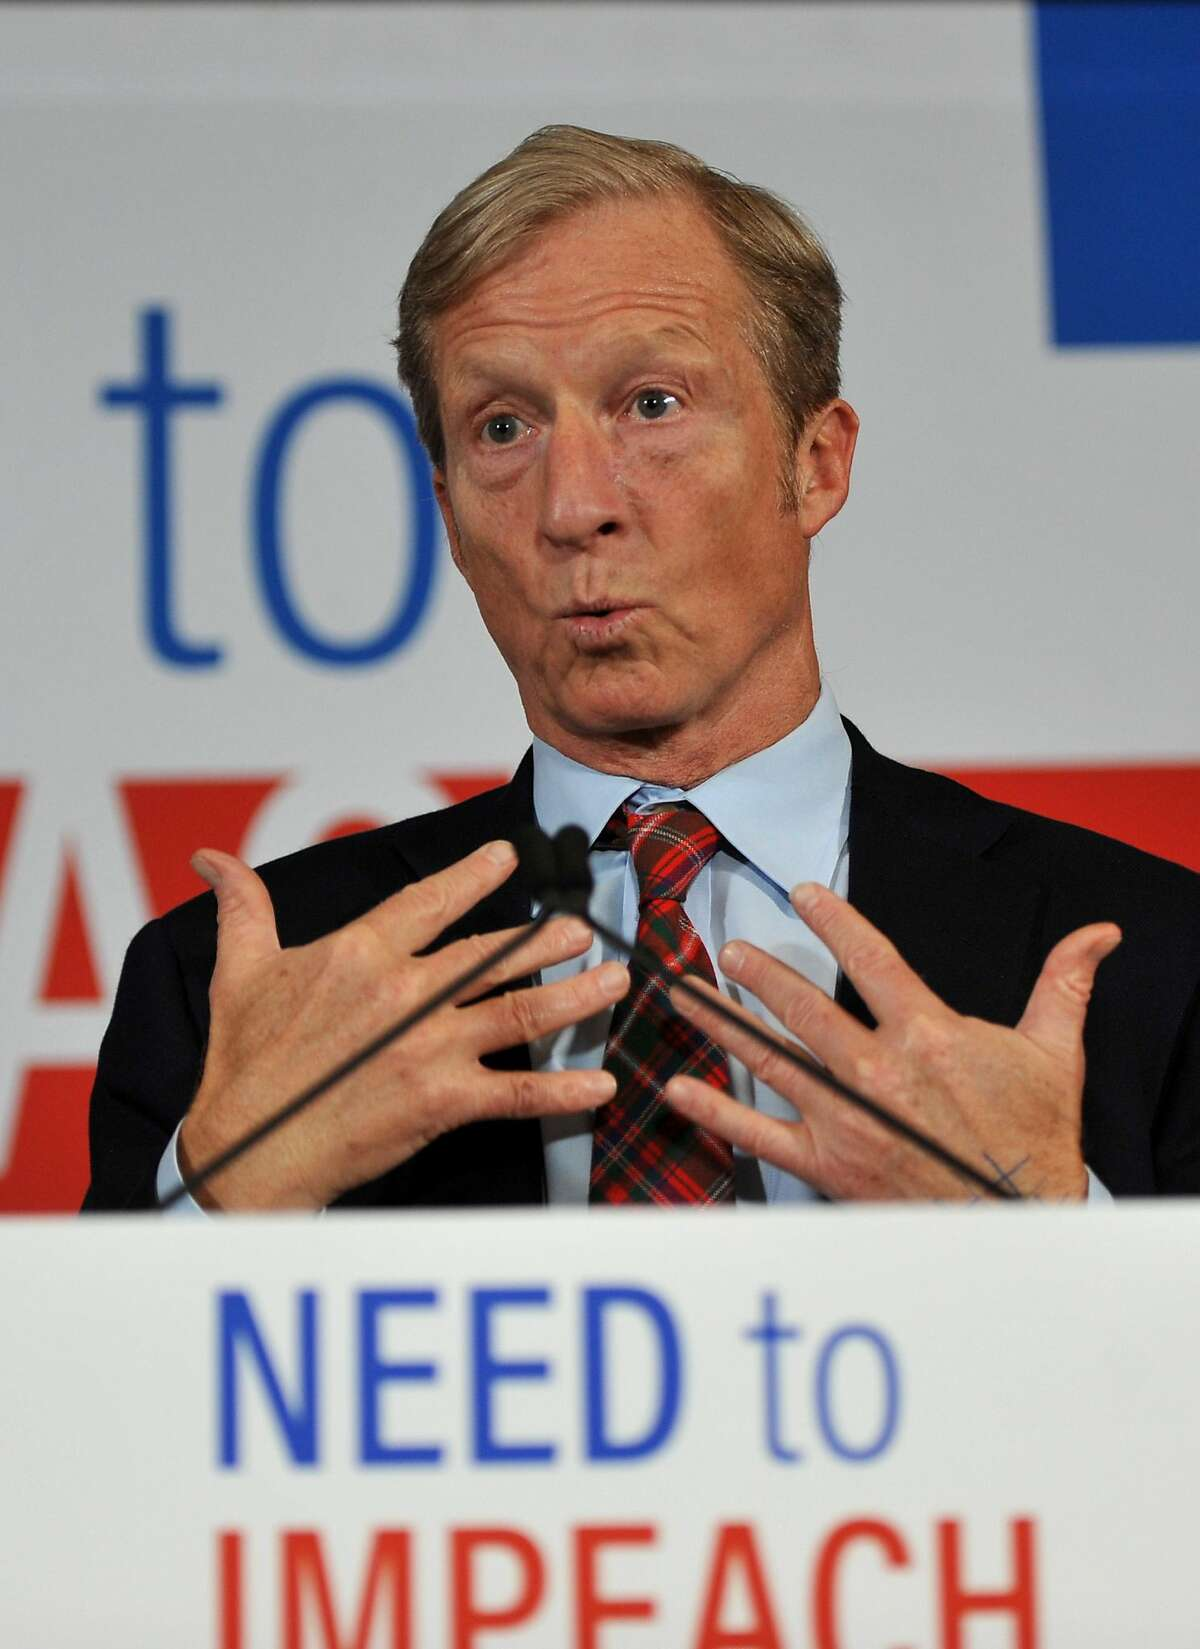 DES MOINES, IA - JANUARY 09: Billionaire Activist Tom Steyer speaks to supporters on January 9, 2019 in Des Moines, Iowa. Steyer announced that he would not run for president in 2020, and would instead concentrate his efforts on the possibility of impeach